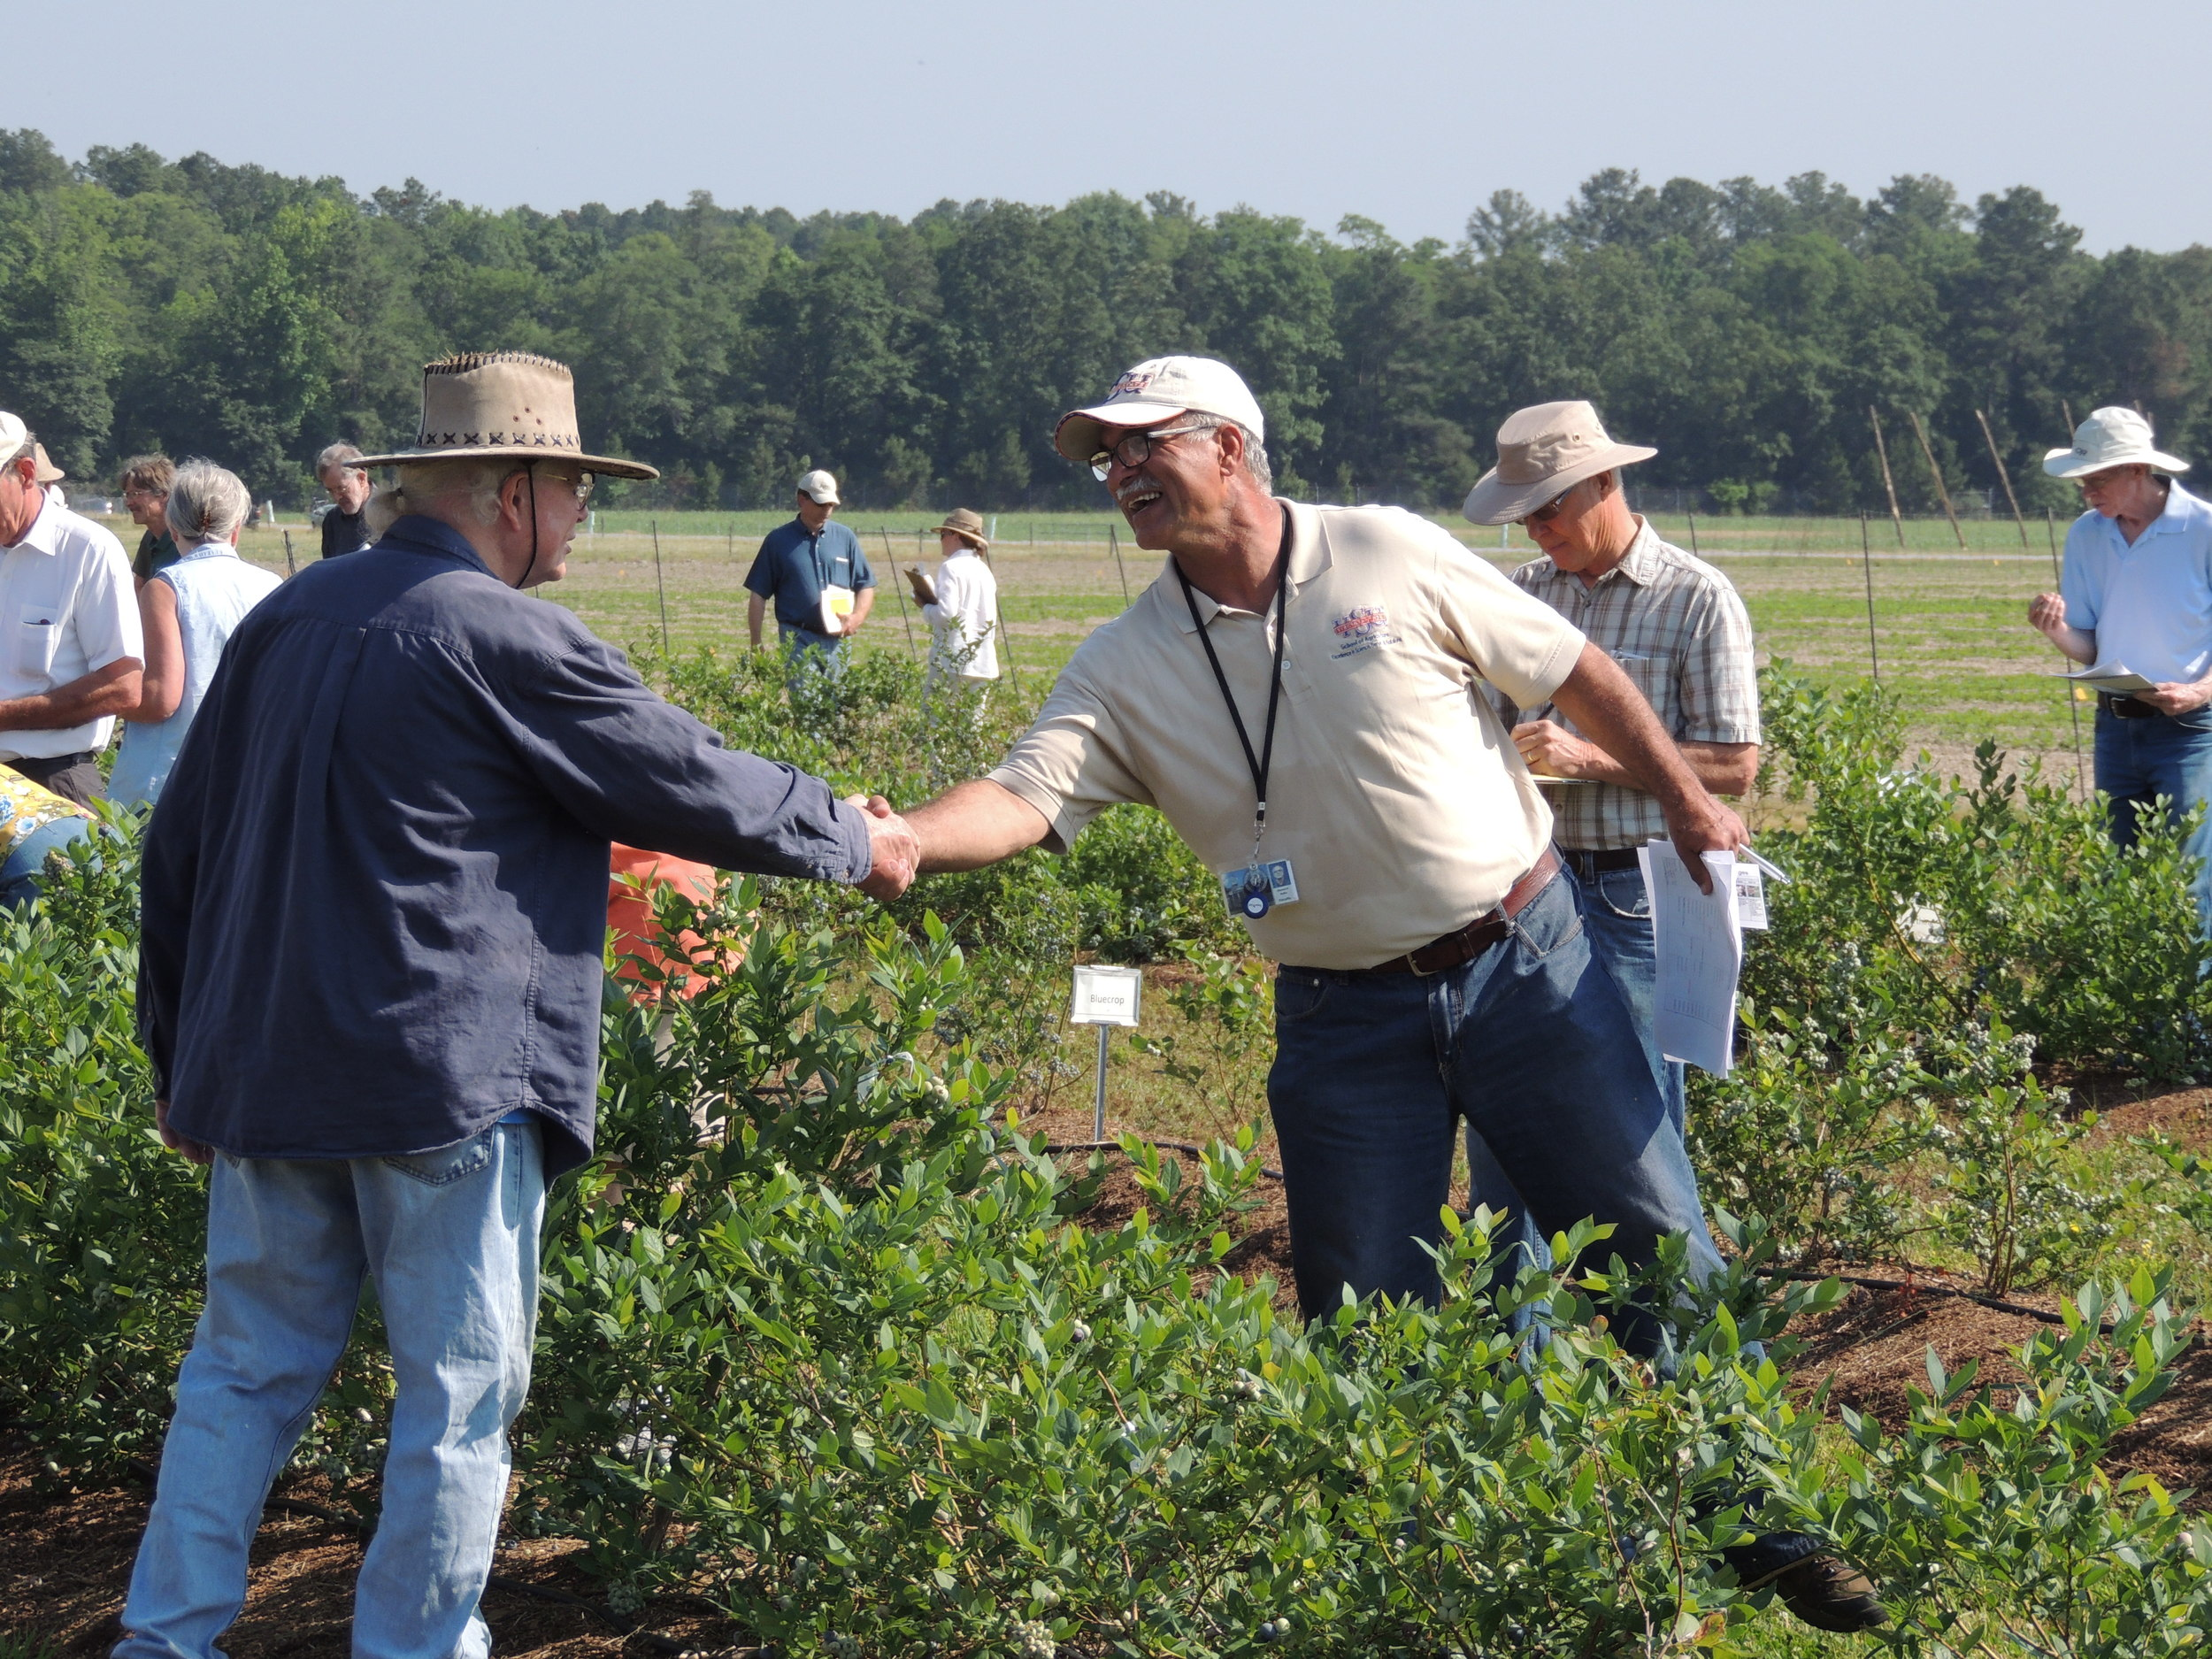 Extension specialist Dr. Reza Rafie welcomes a farmer to Virginia State University's Randolph Farm to learn more about growing blueberries in Virginia.